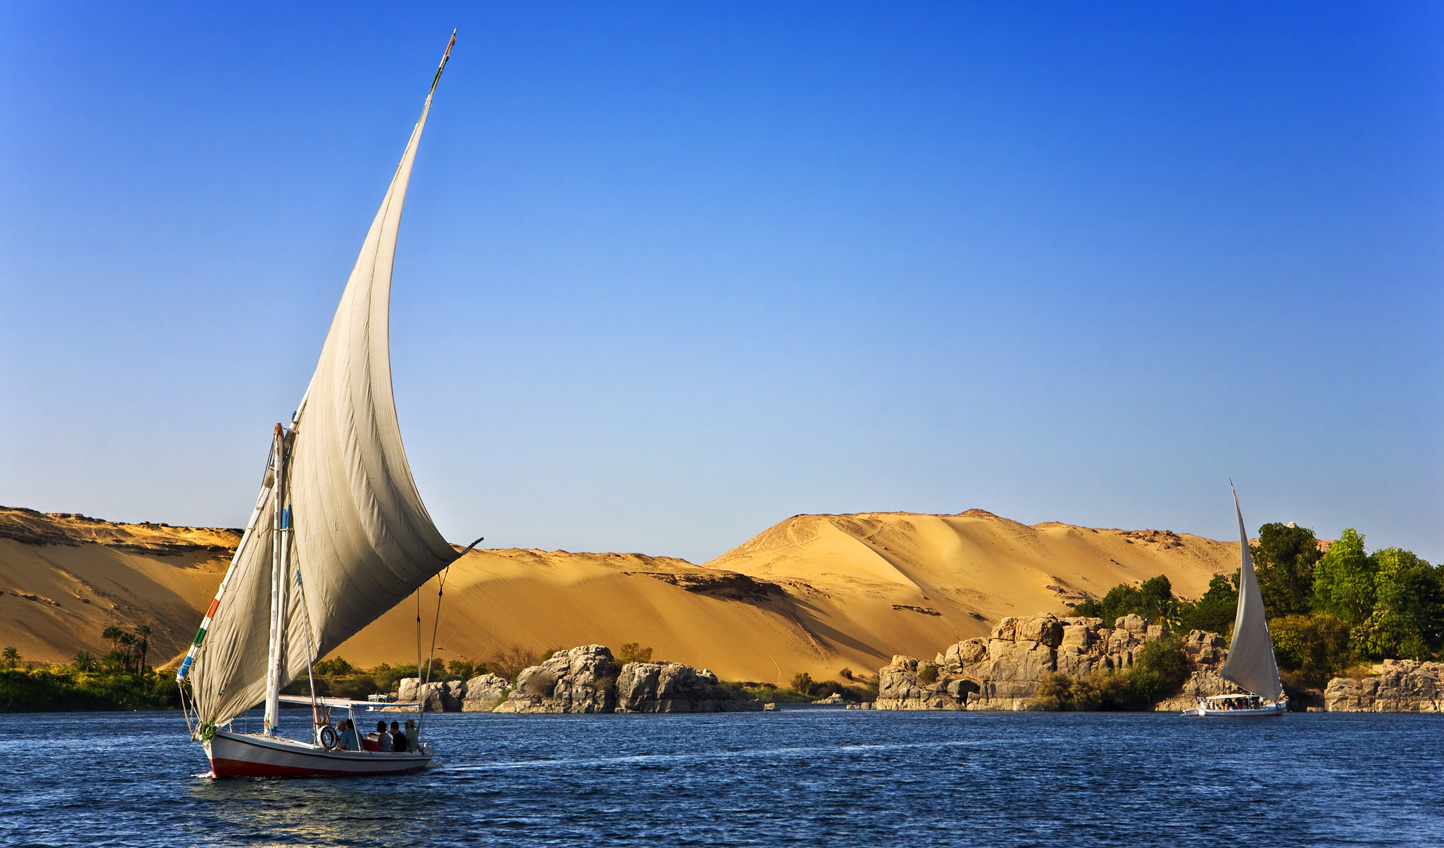 Enjoy a leisurely lunch floating down the Nile on a traditional felucca